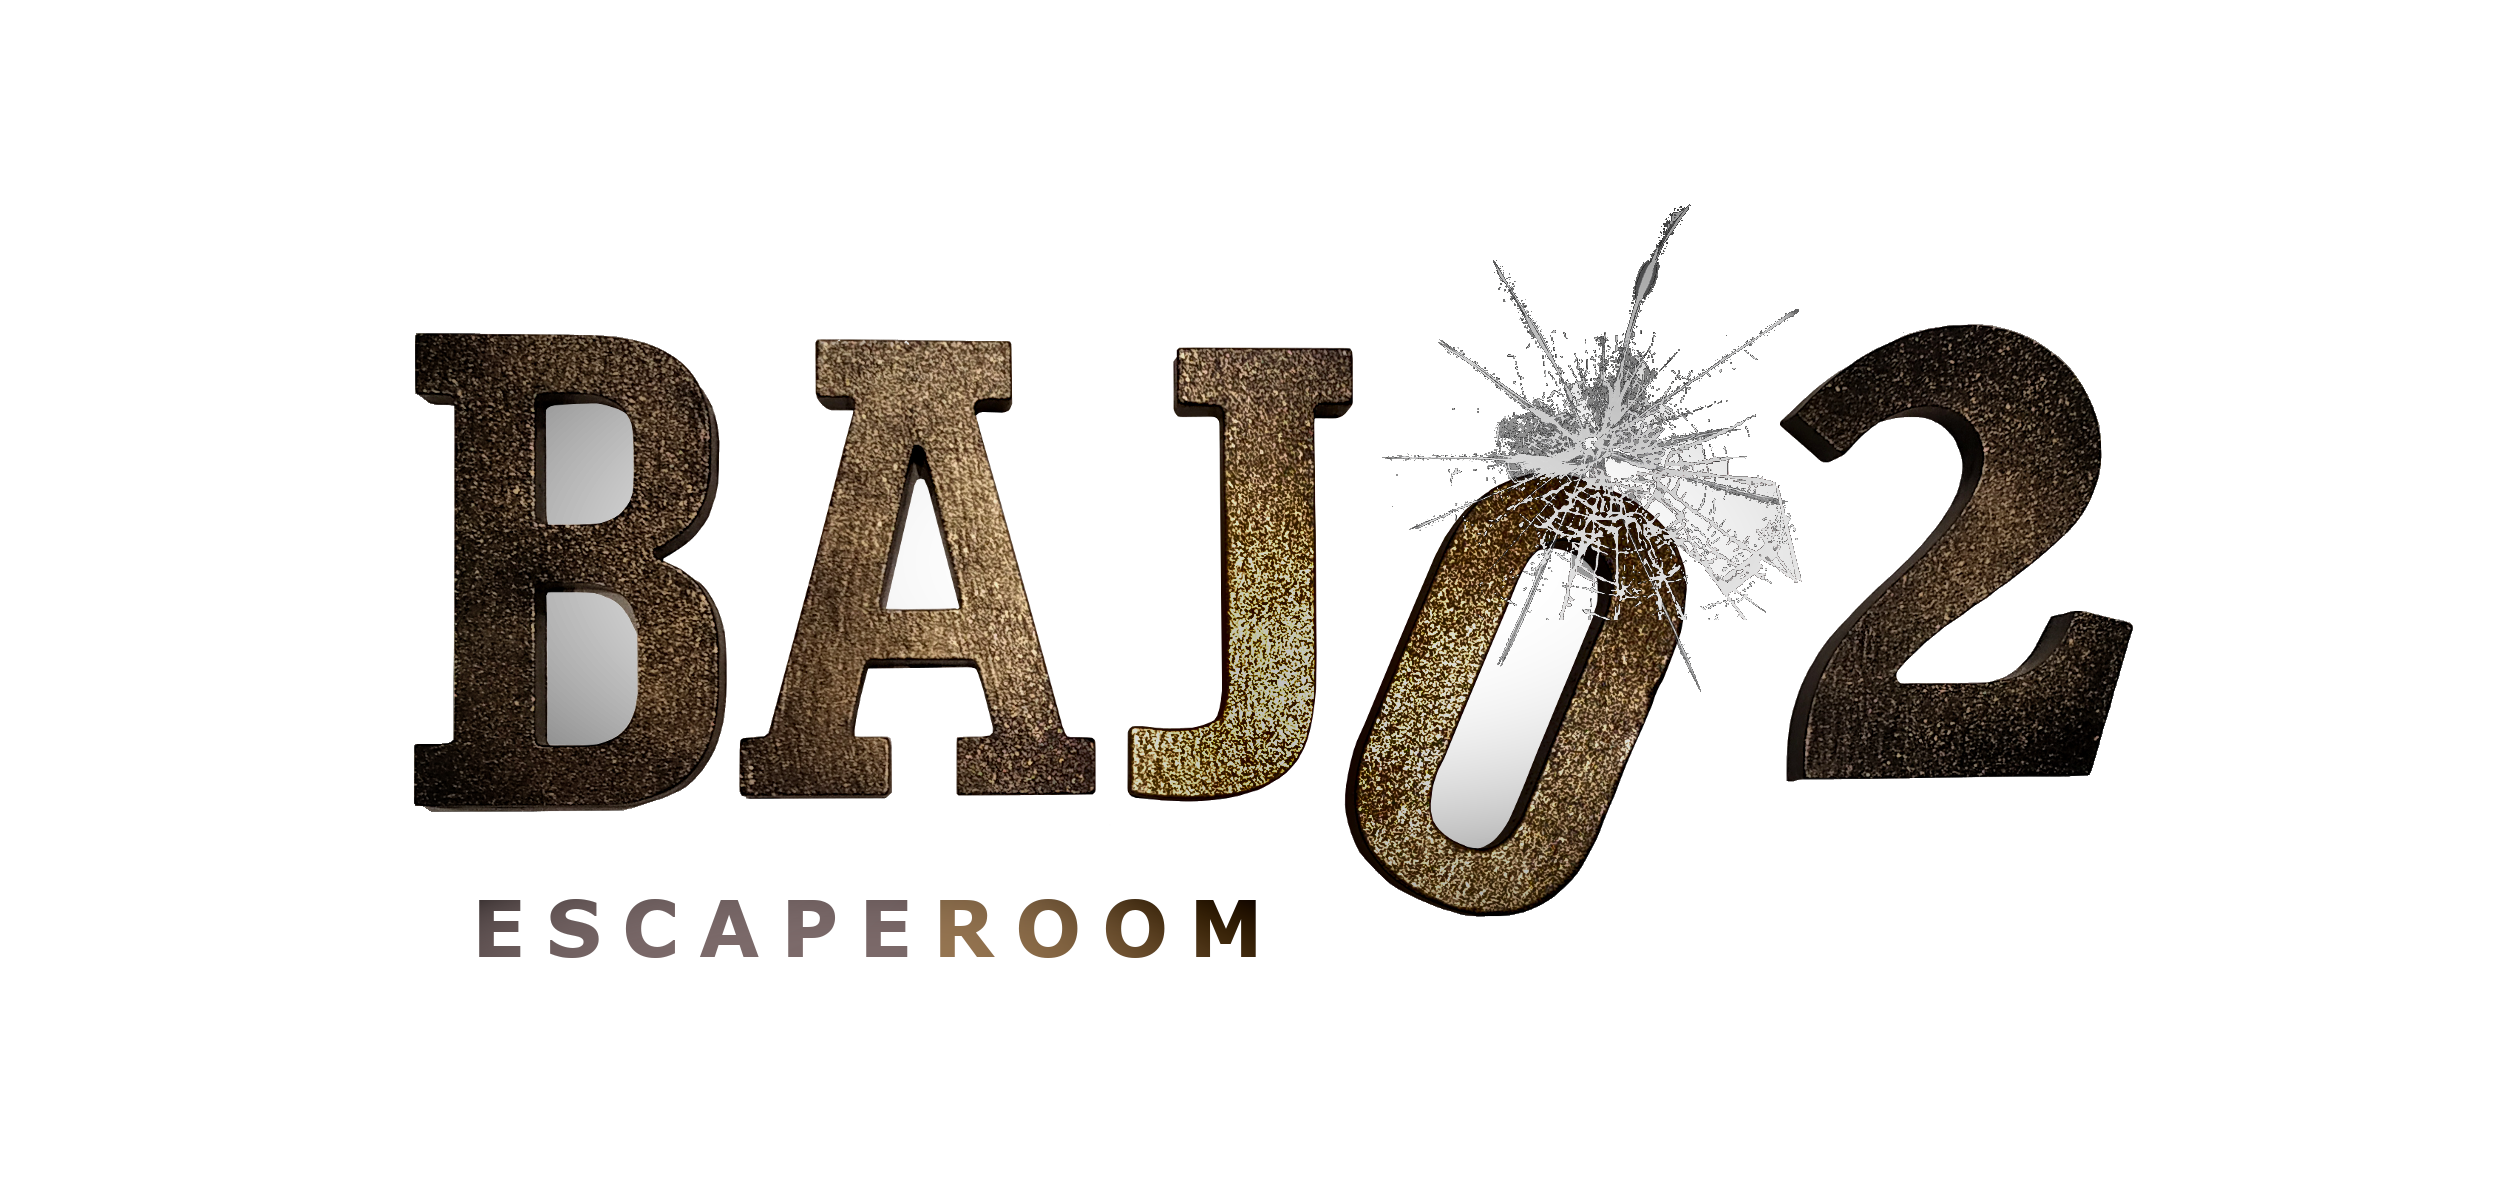 Bajo Segunda - Escape room